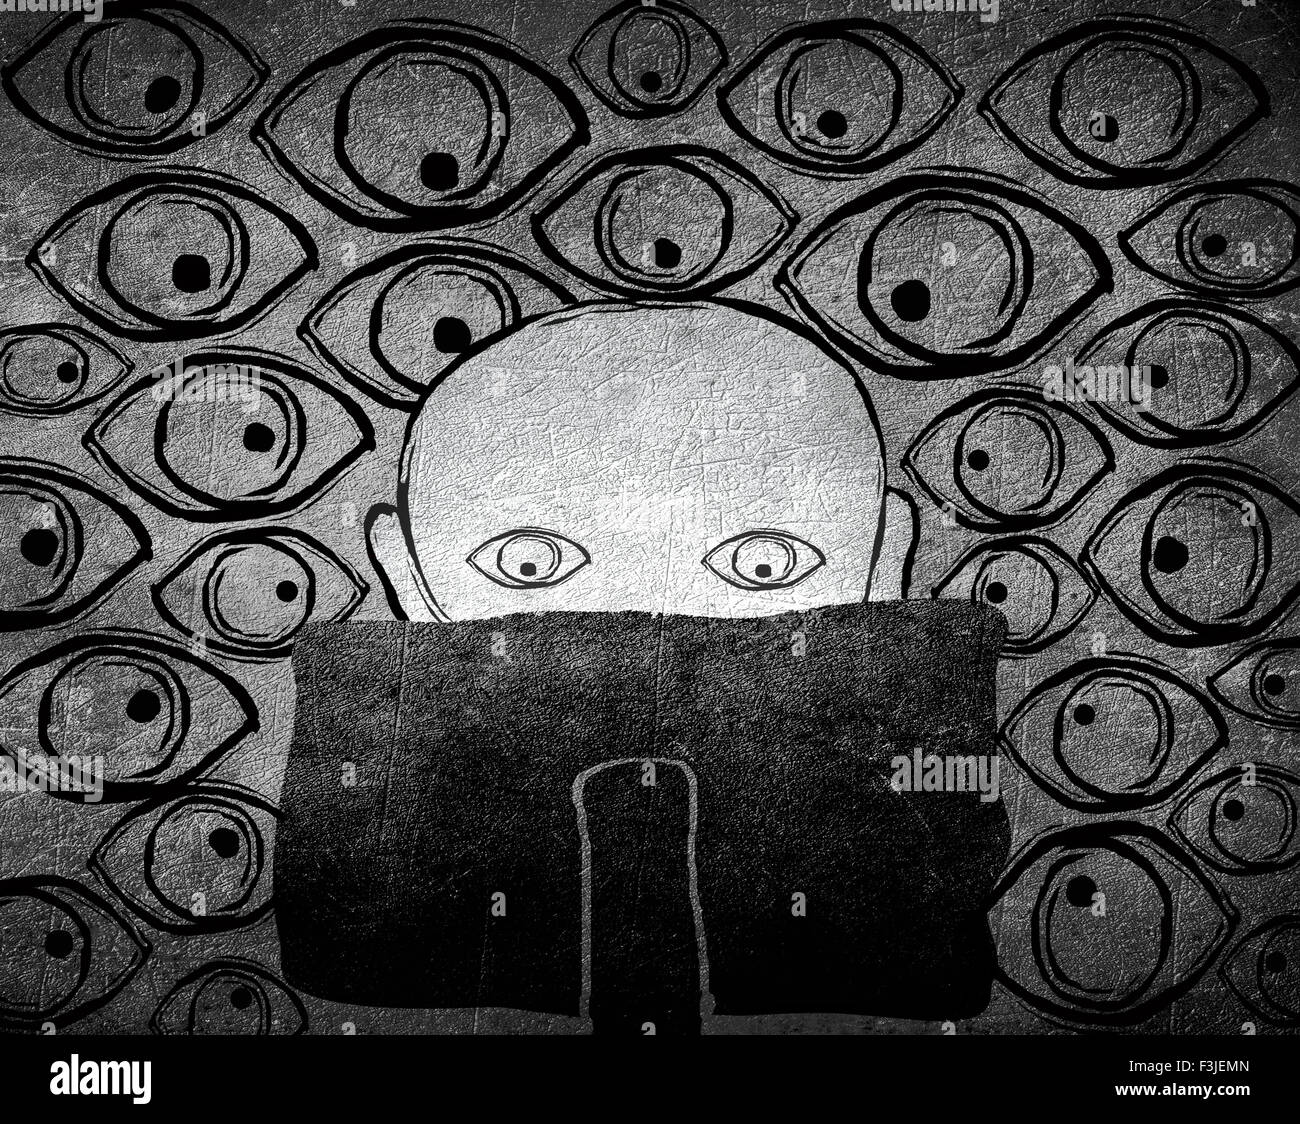 no privacy concept black and white digital illustration - Stock Image